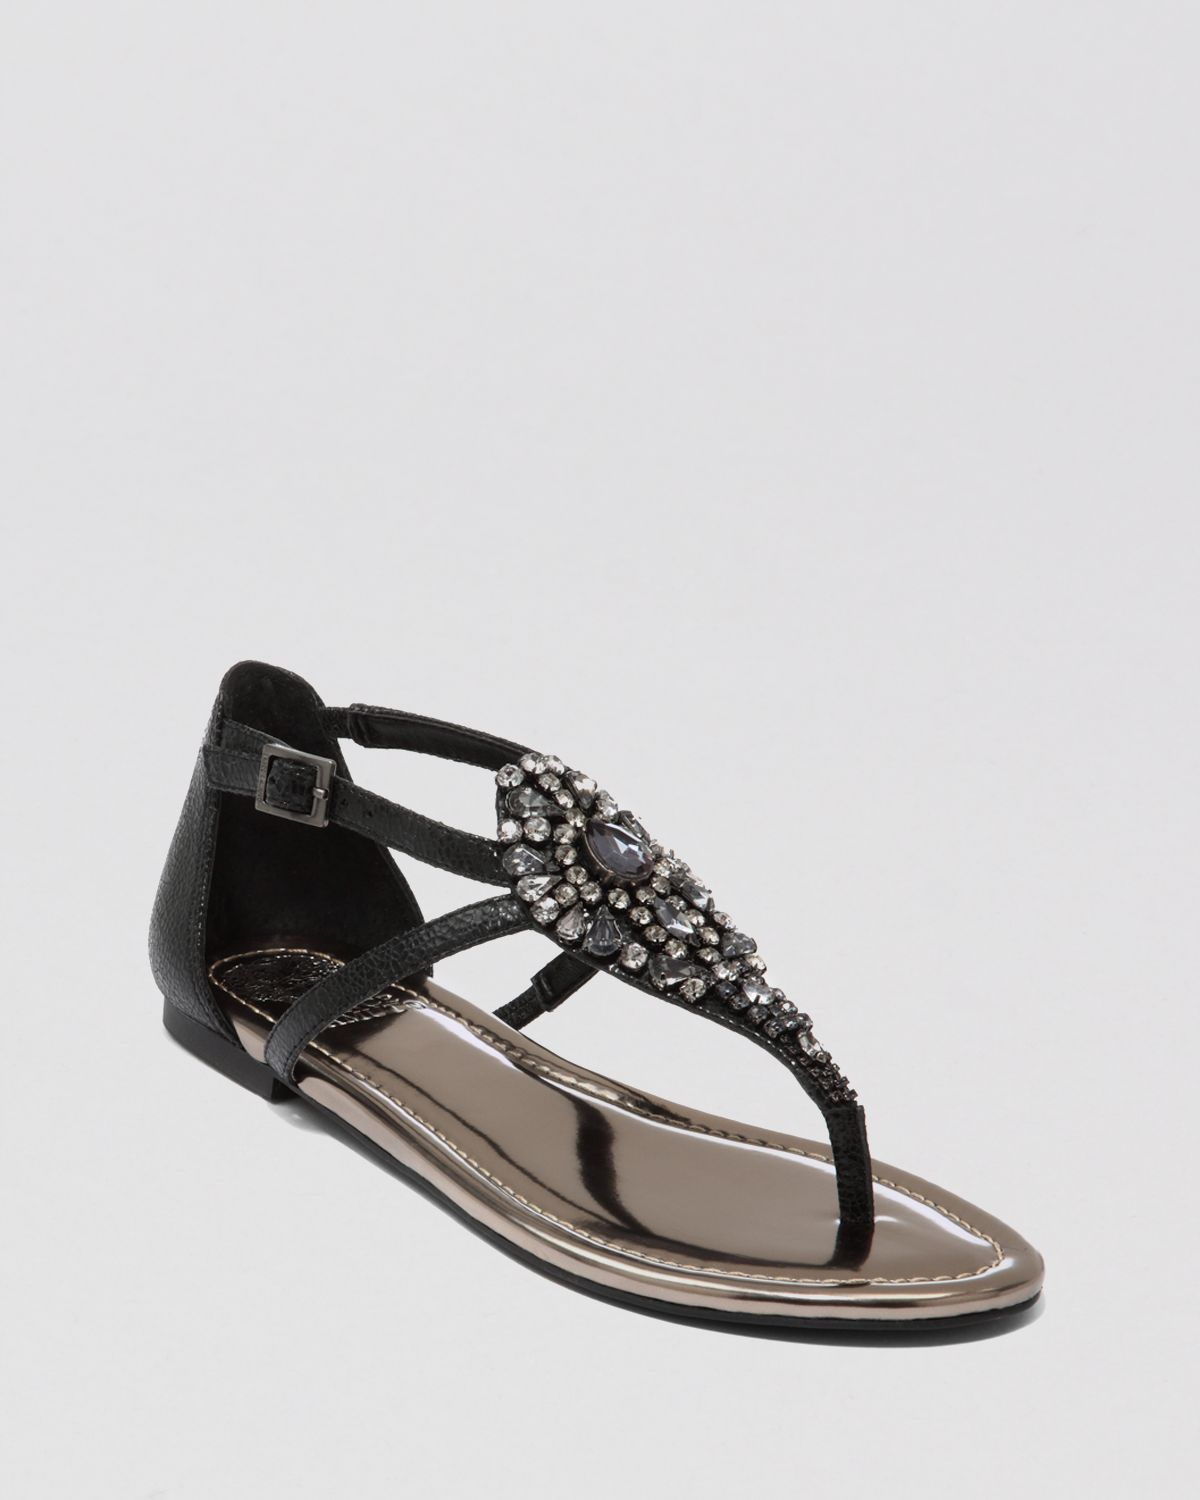 Lyst Vince Camuto Sandals Macalia Jeweled Flat In Black